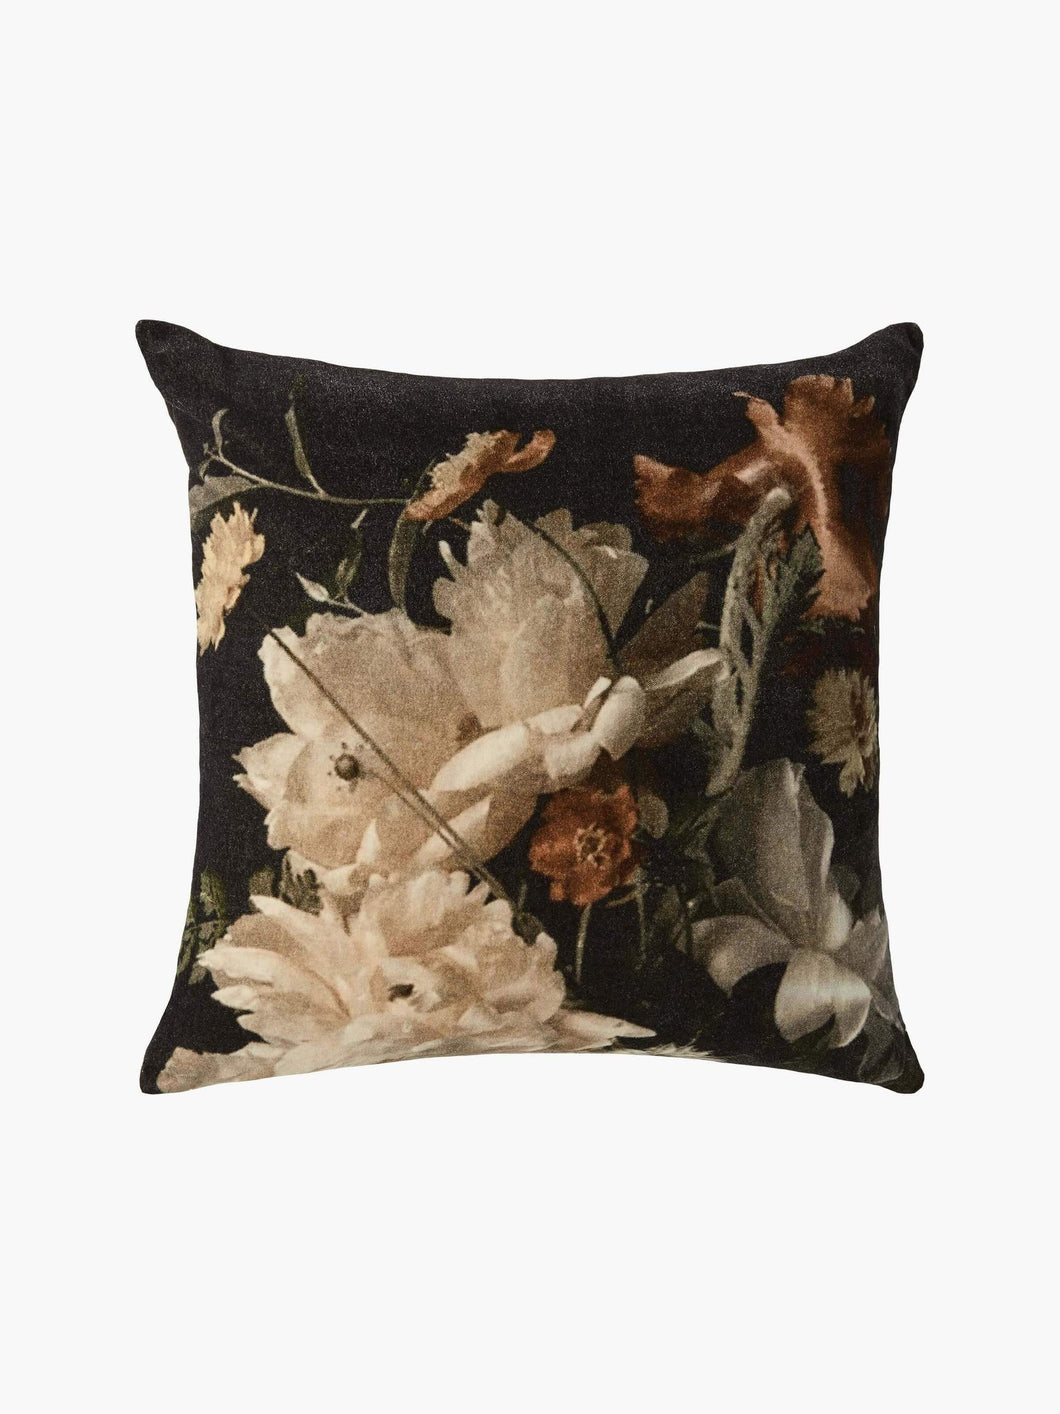 Splendour Cushion - Velvet Forest Floral Cushion